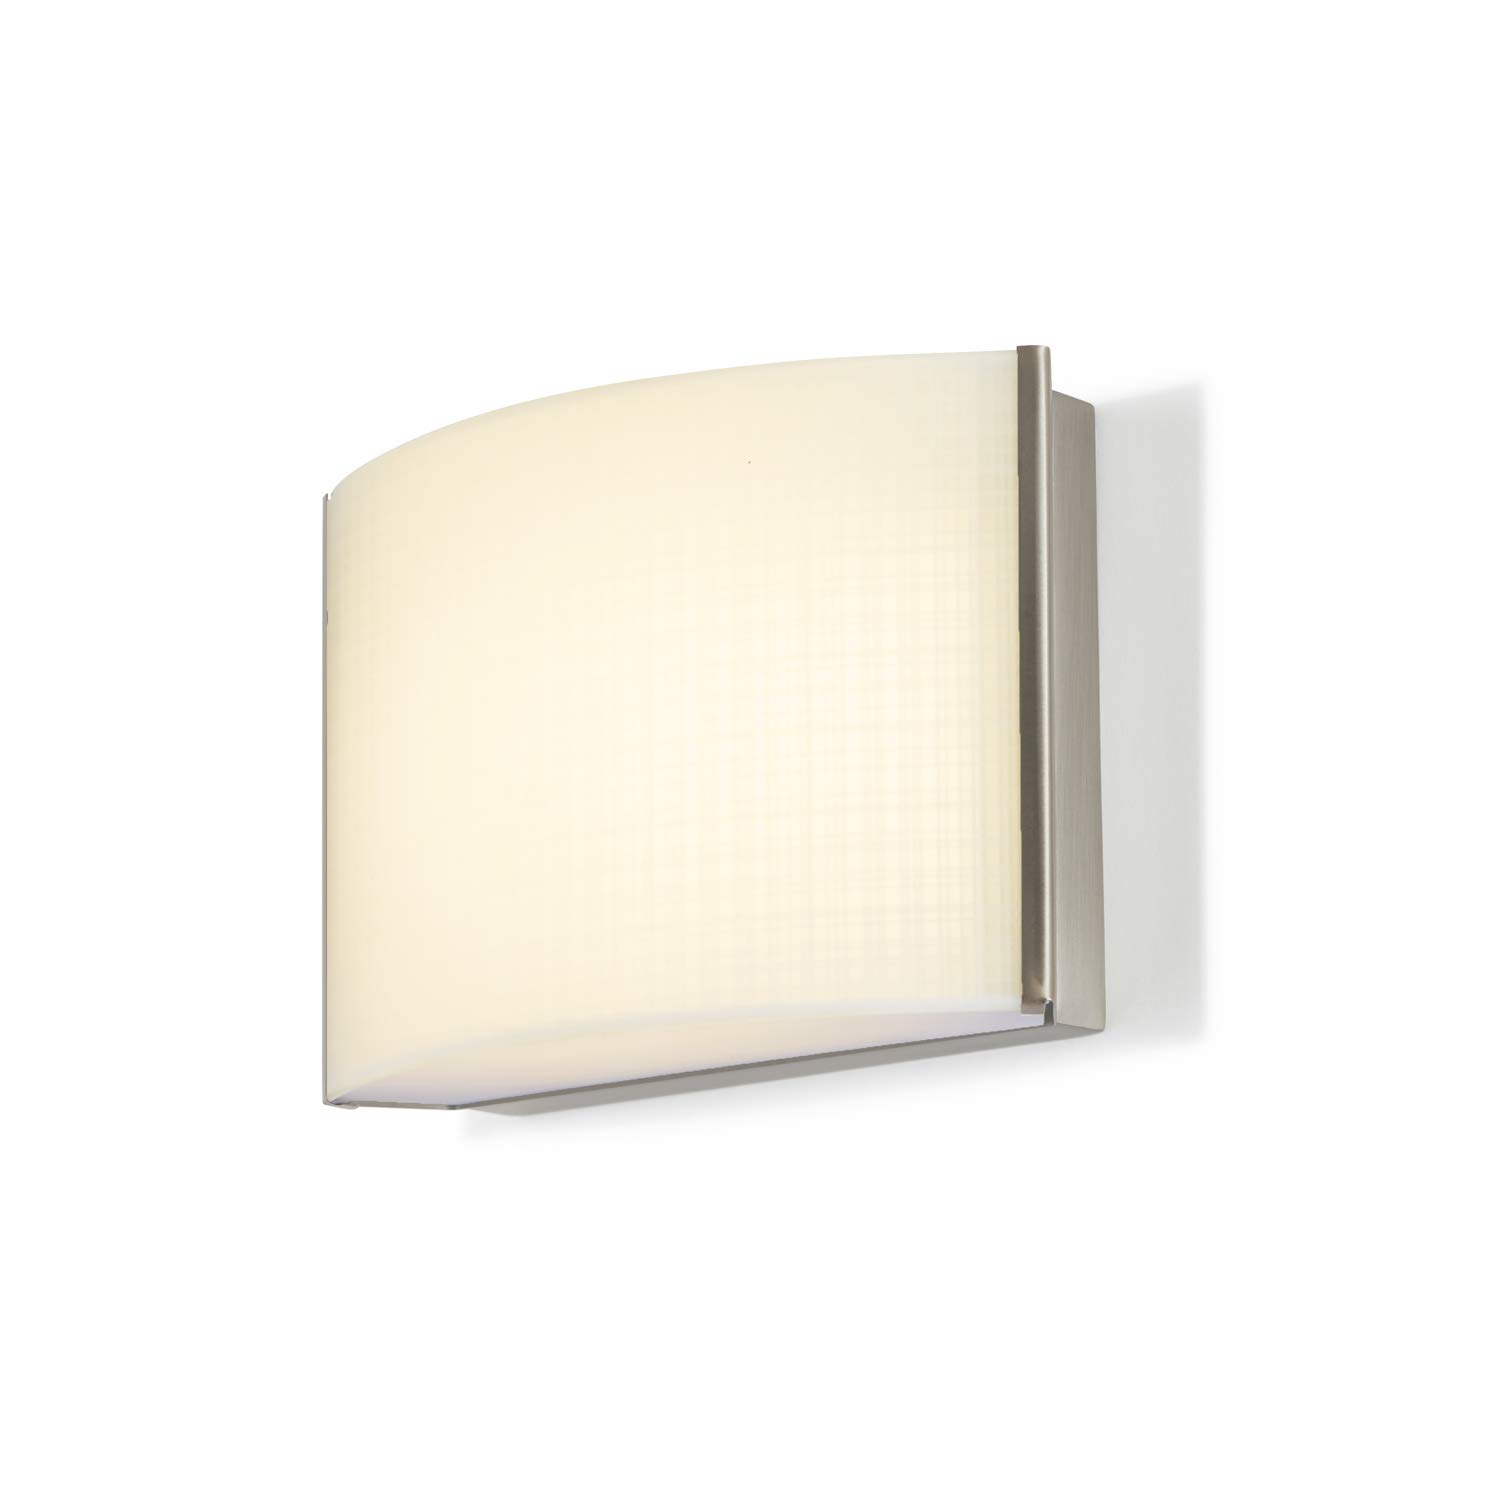 1-Light Nickel Sconce Vanity Fixture - LED Bathroom Lamp, Linen Textured Glass, Hardwire, Damp Located, Fully Dimmable - ETL Listed